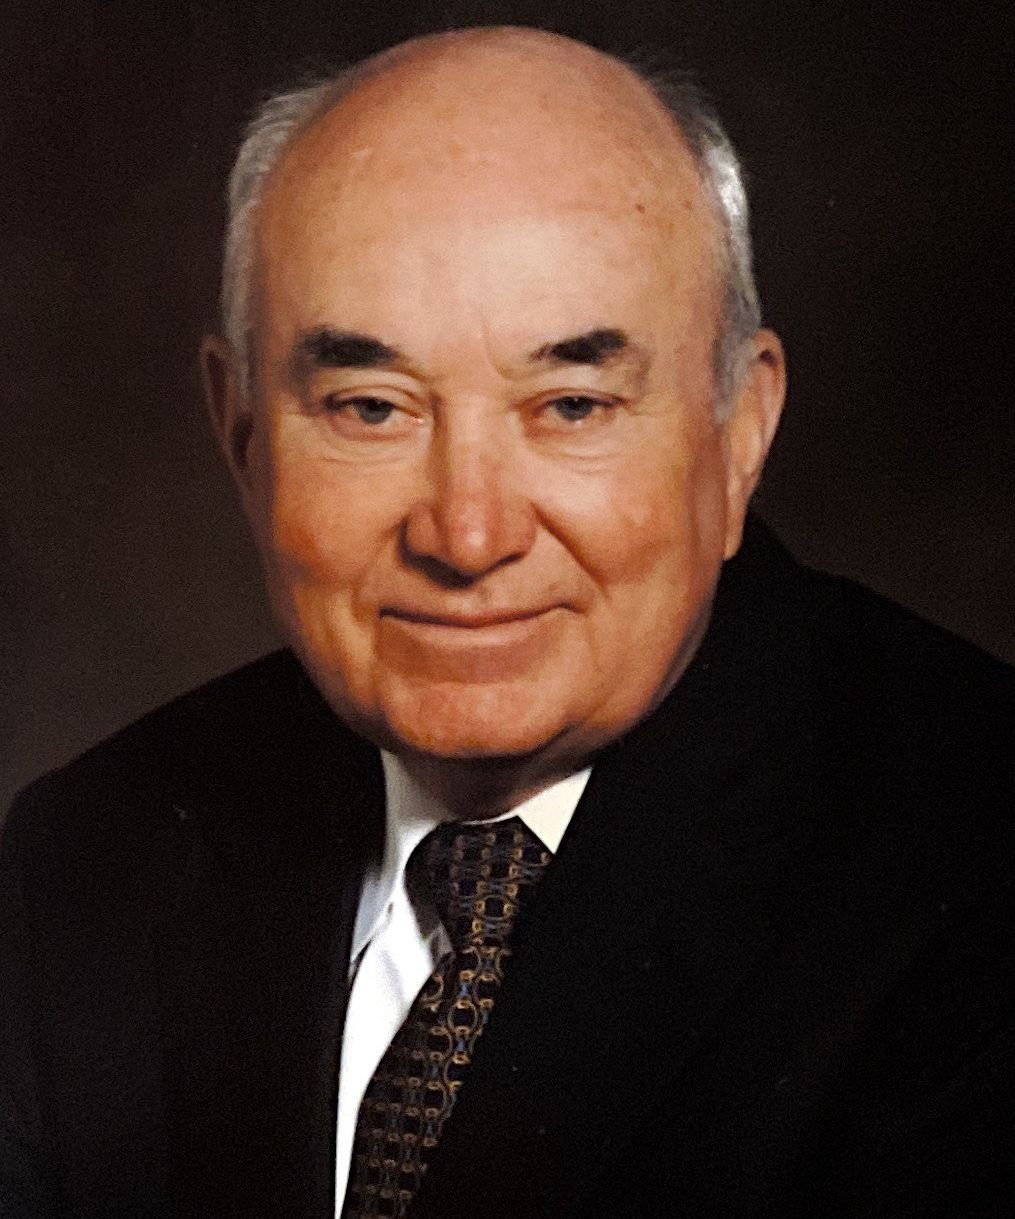 Adkisson, Dr. Perry Lee